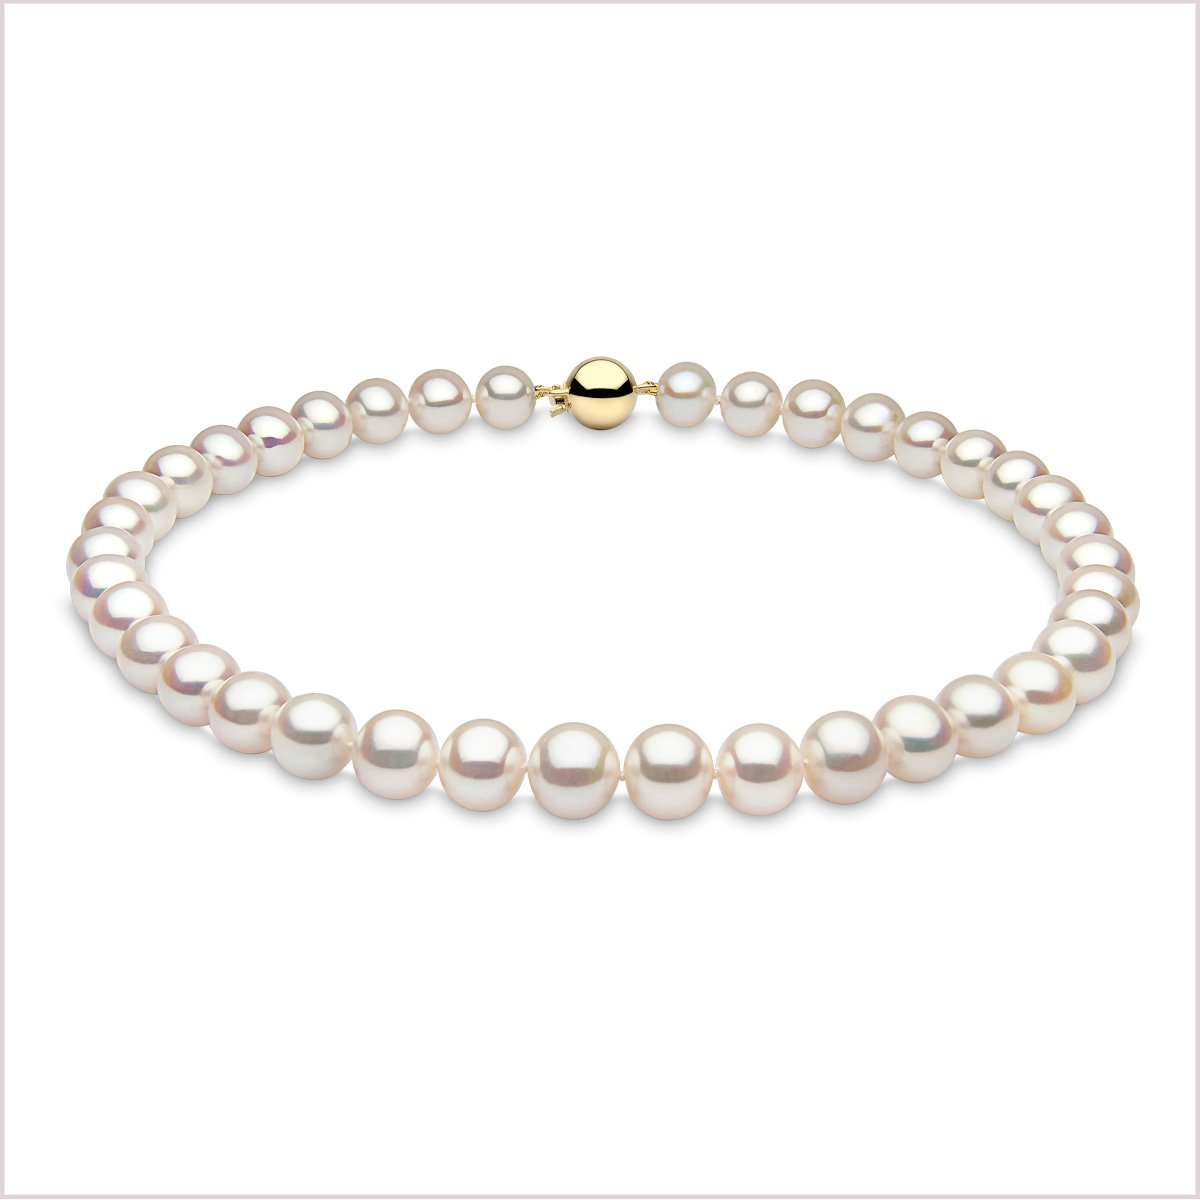 Yoko London Classic Freshwater Pearl Necklace